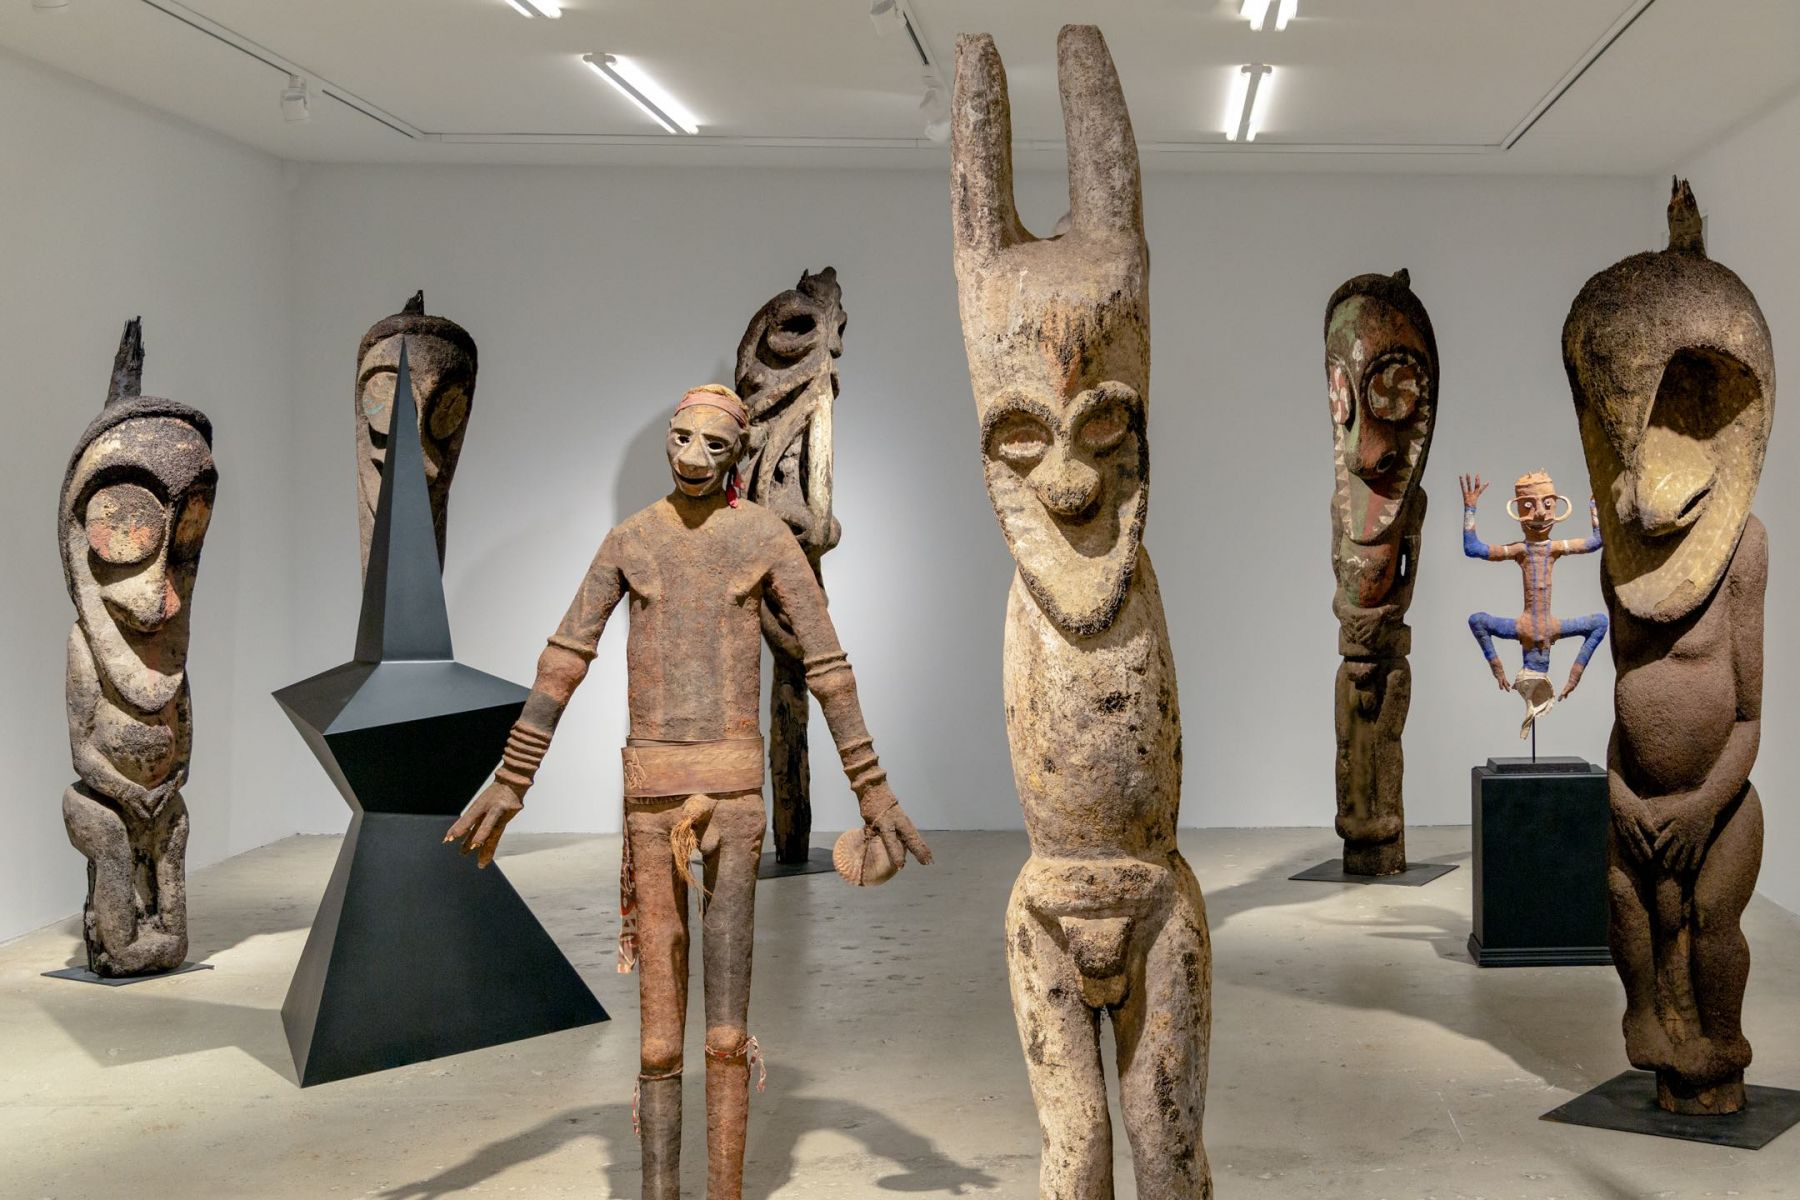 Calder Crags + Vanuatu Totems from the Collection of Wayne Heathcote, Installation Image 3